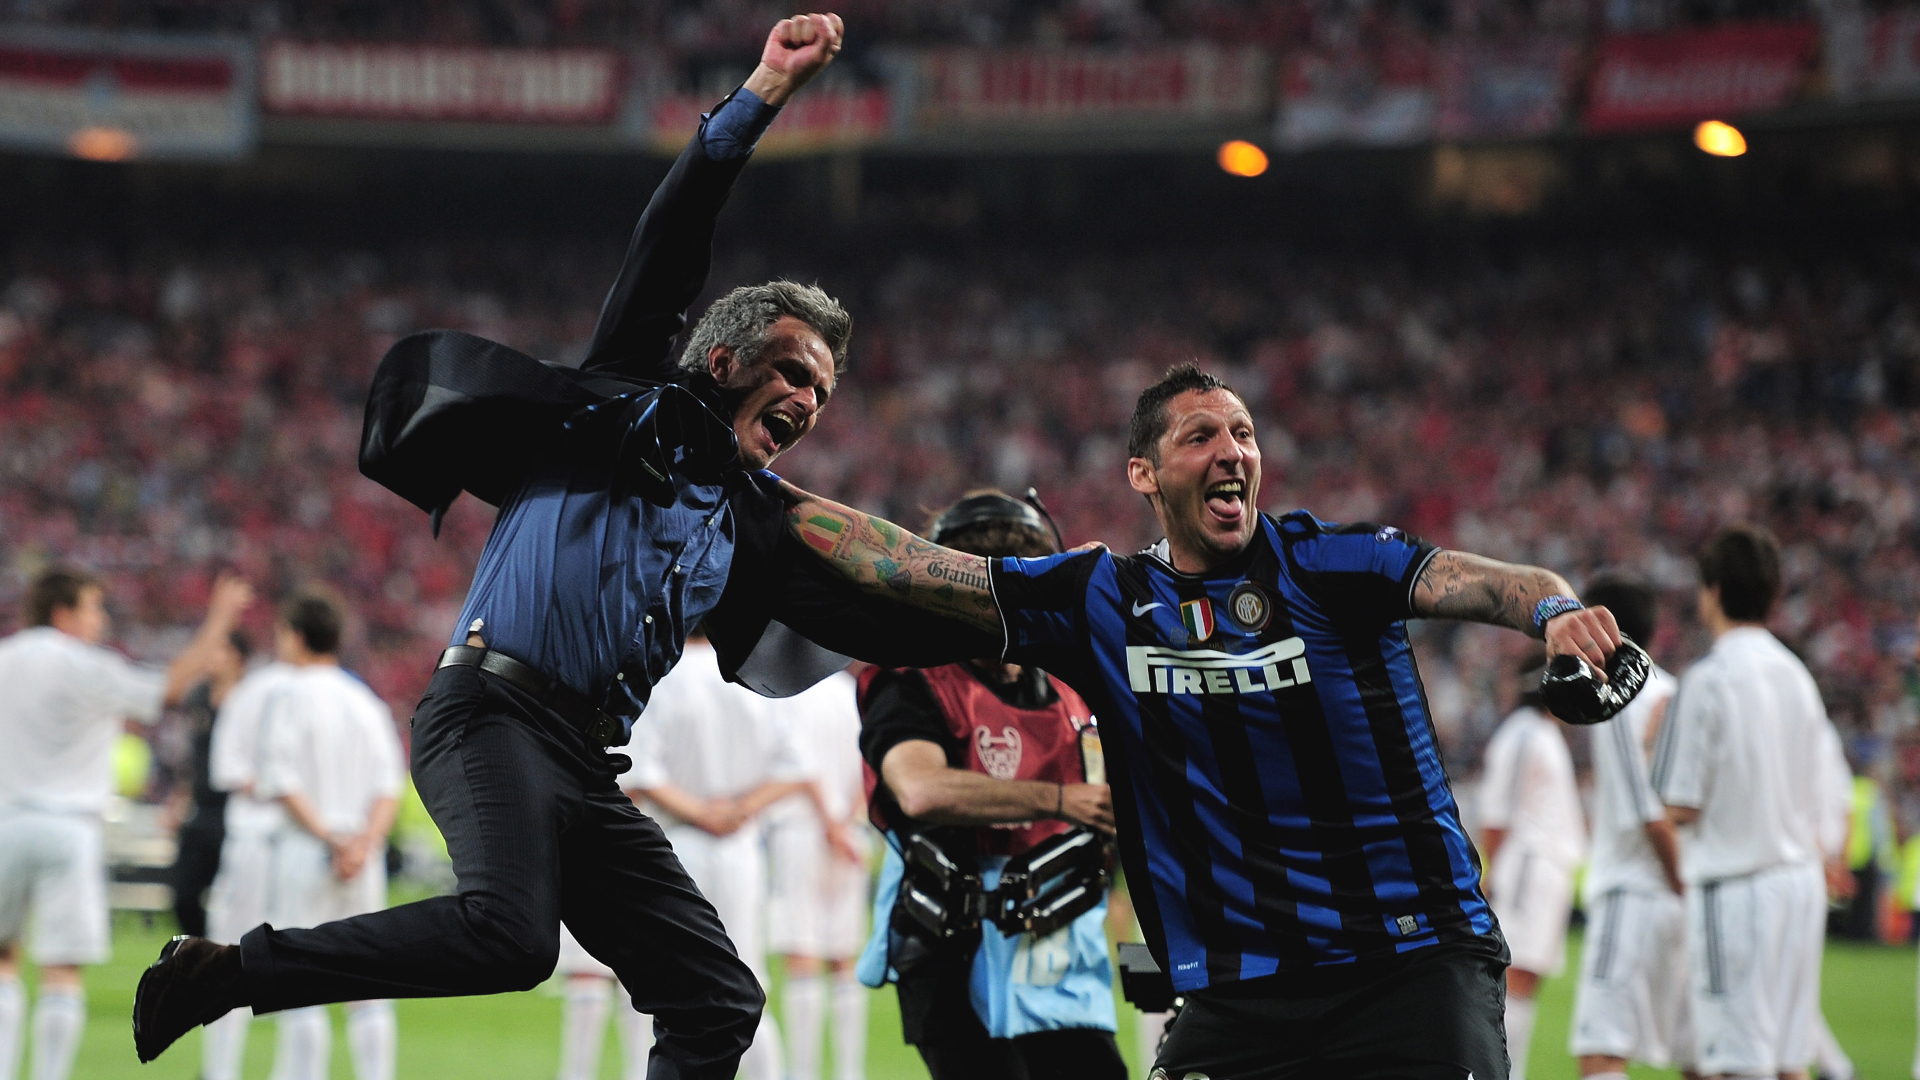 Inter, Real, China - who the hell would hire Mourinho now?